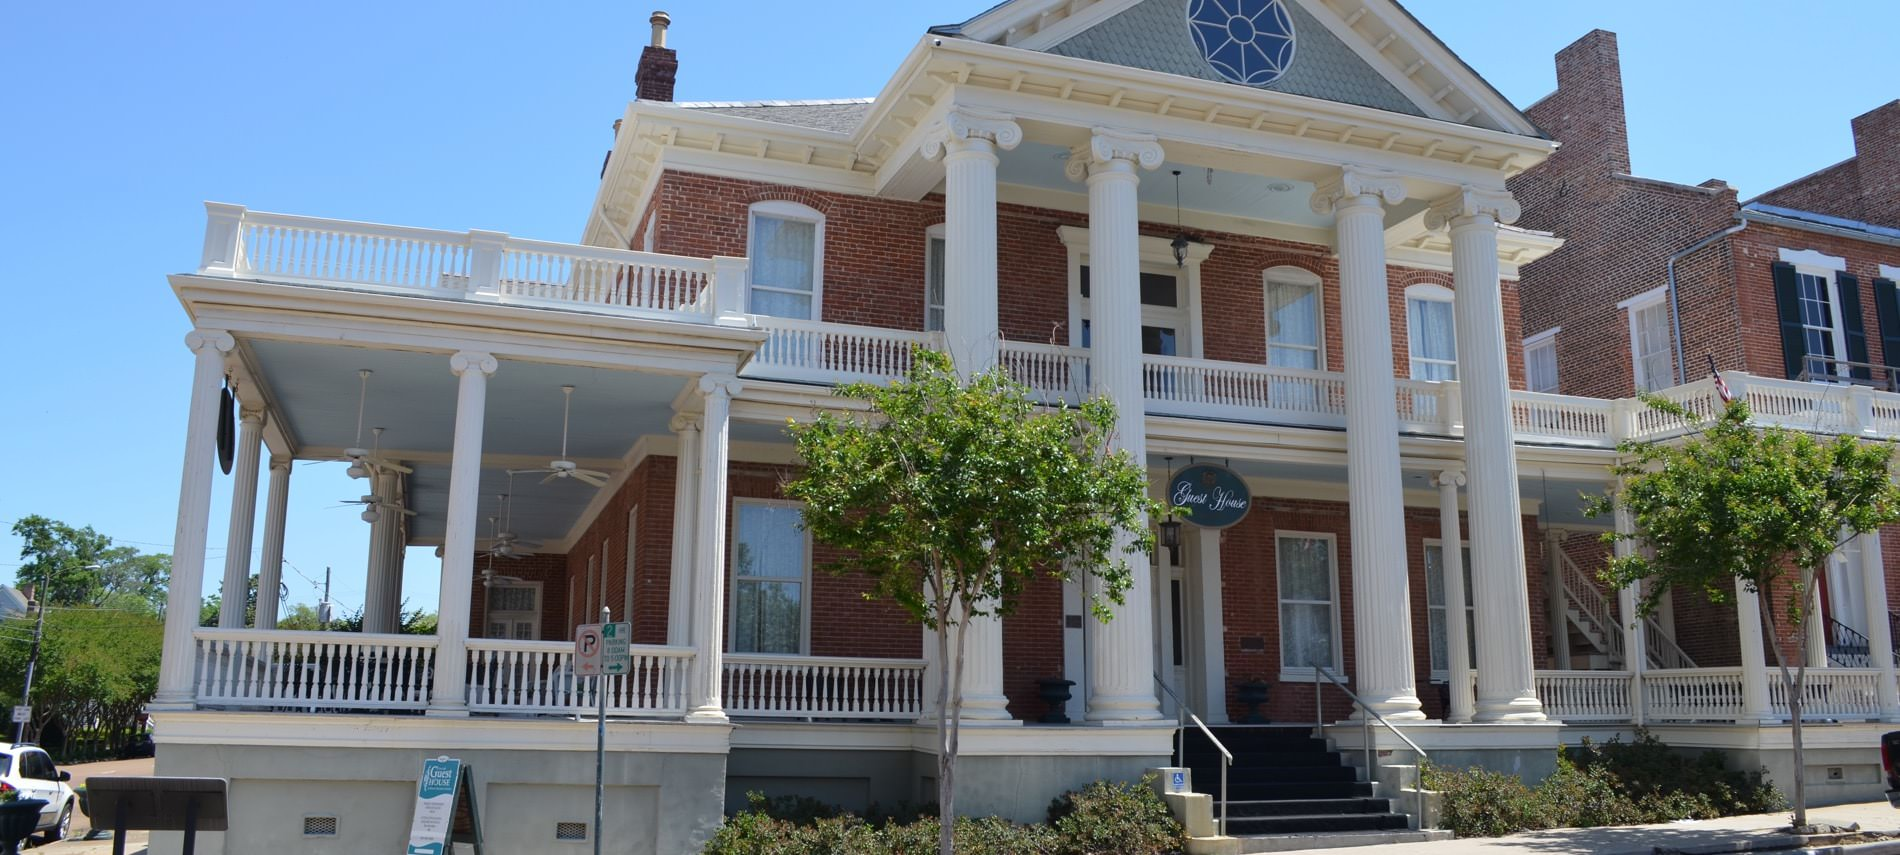 Front view of Guest House that is two stories and covered in red-brick. Has many white pillars, large porch areas, and small trees on front sidewalk